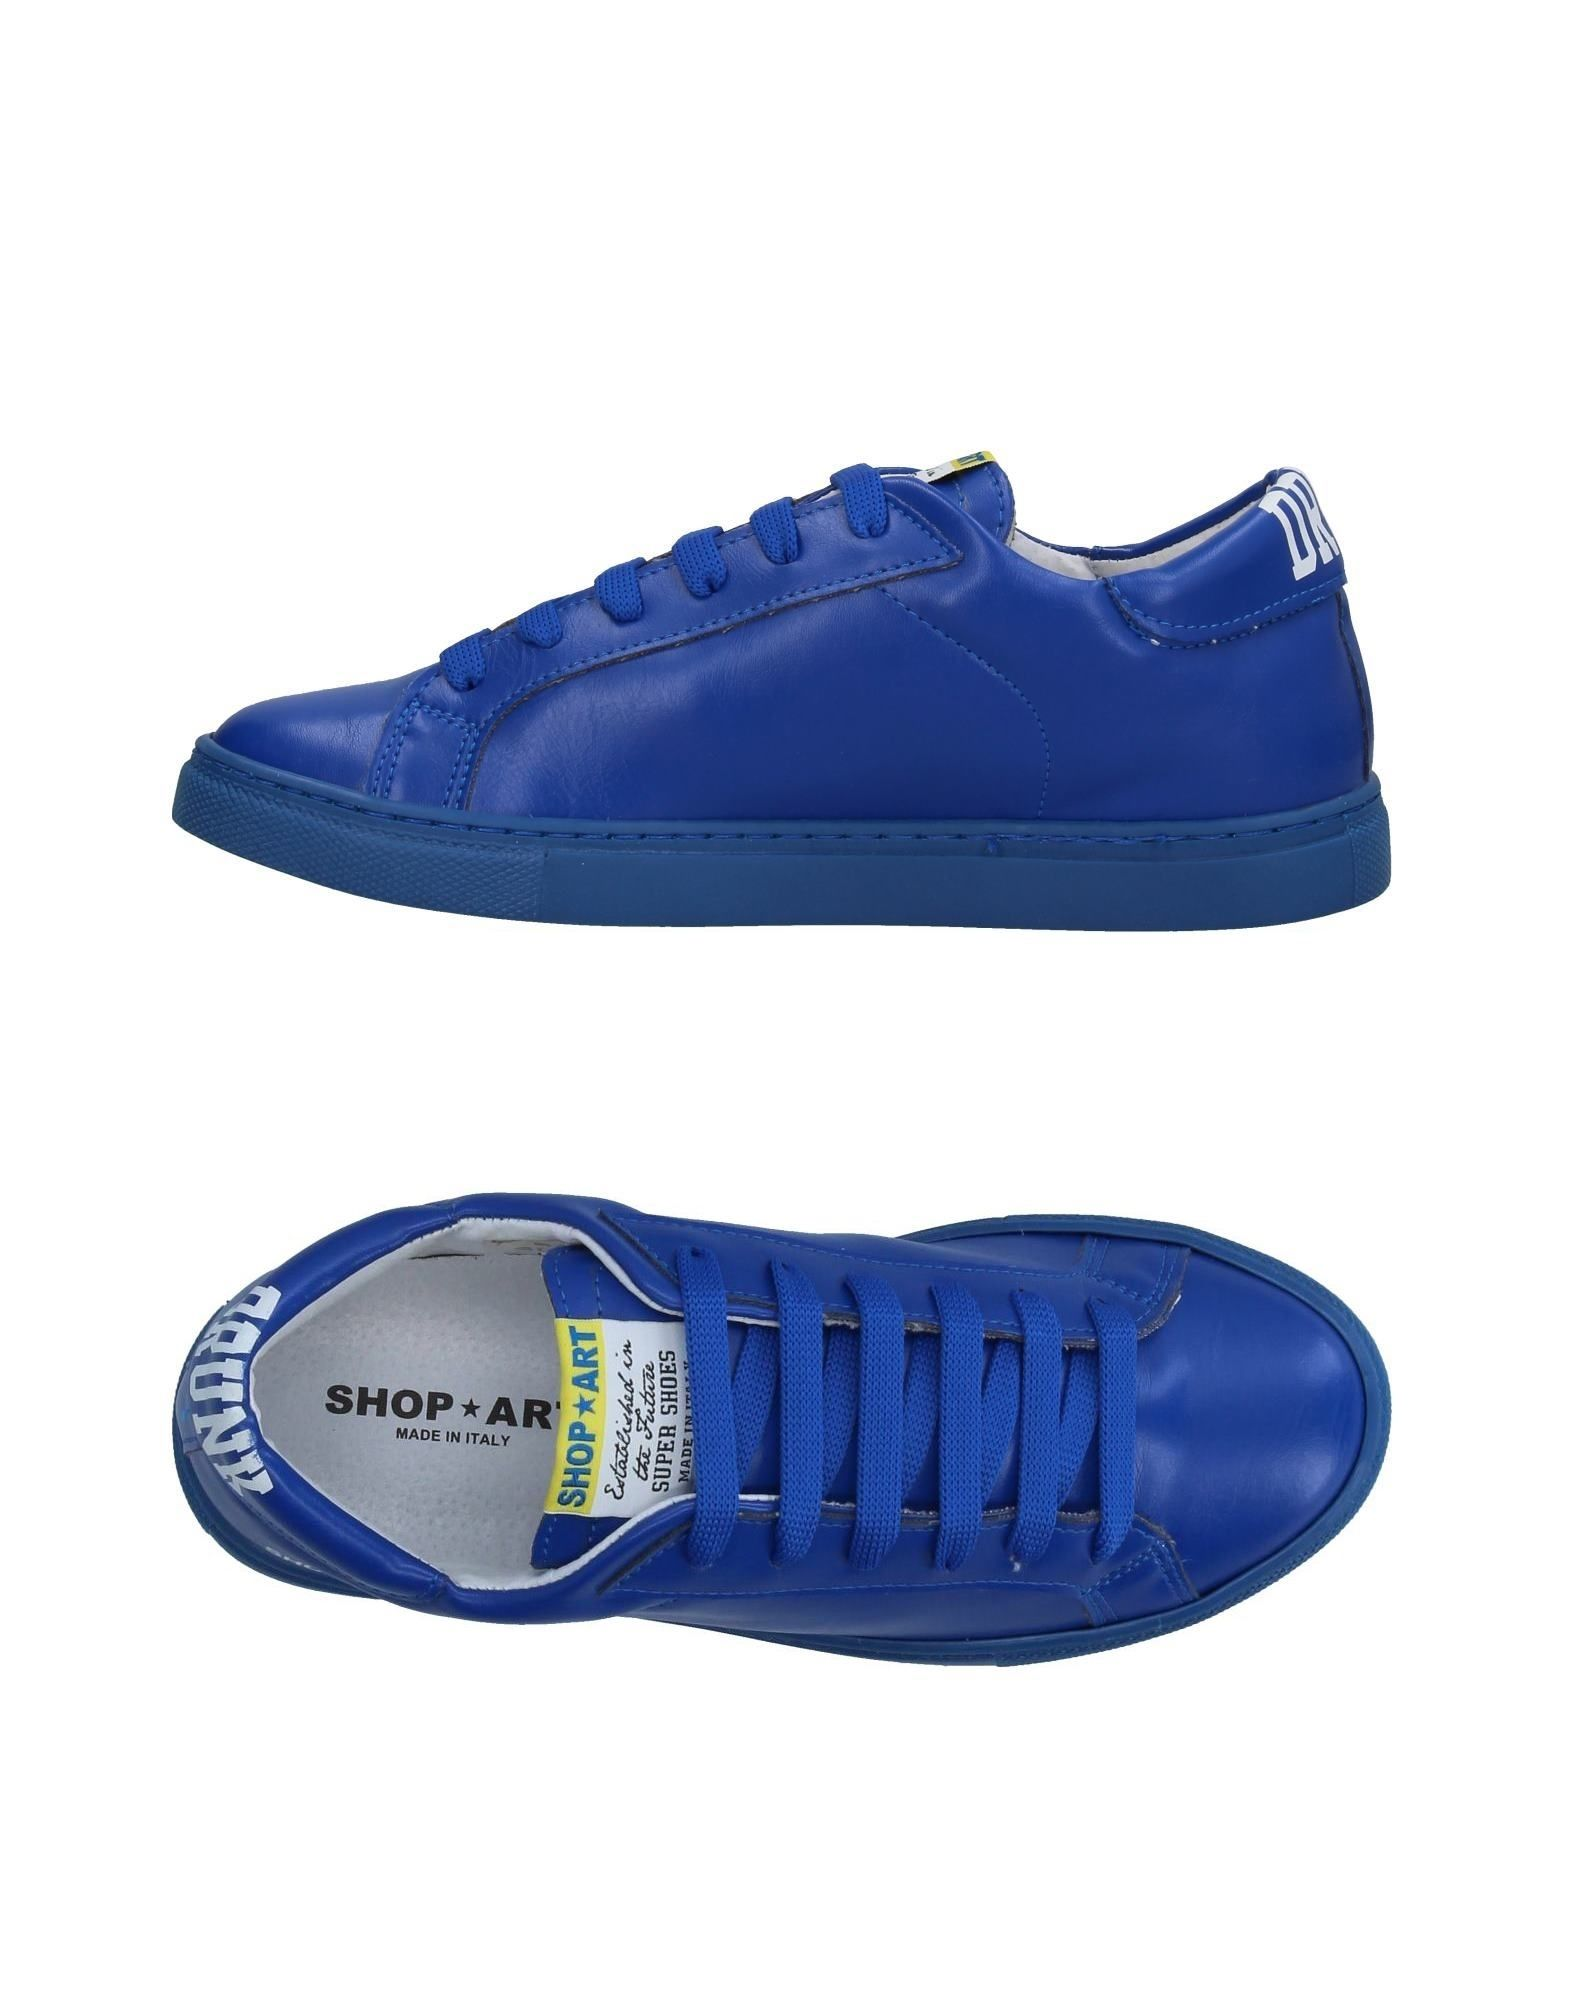 Sneakers Shop ★ Art Donna - 11359171SI